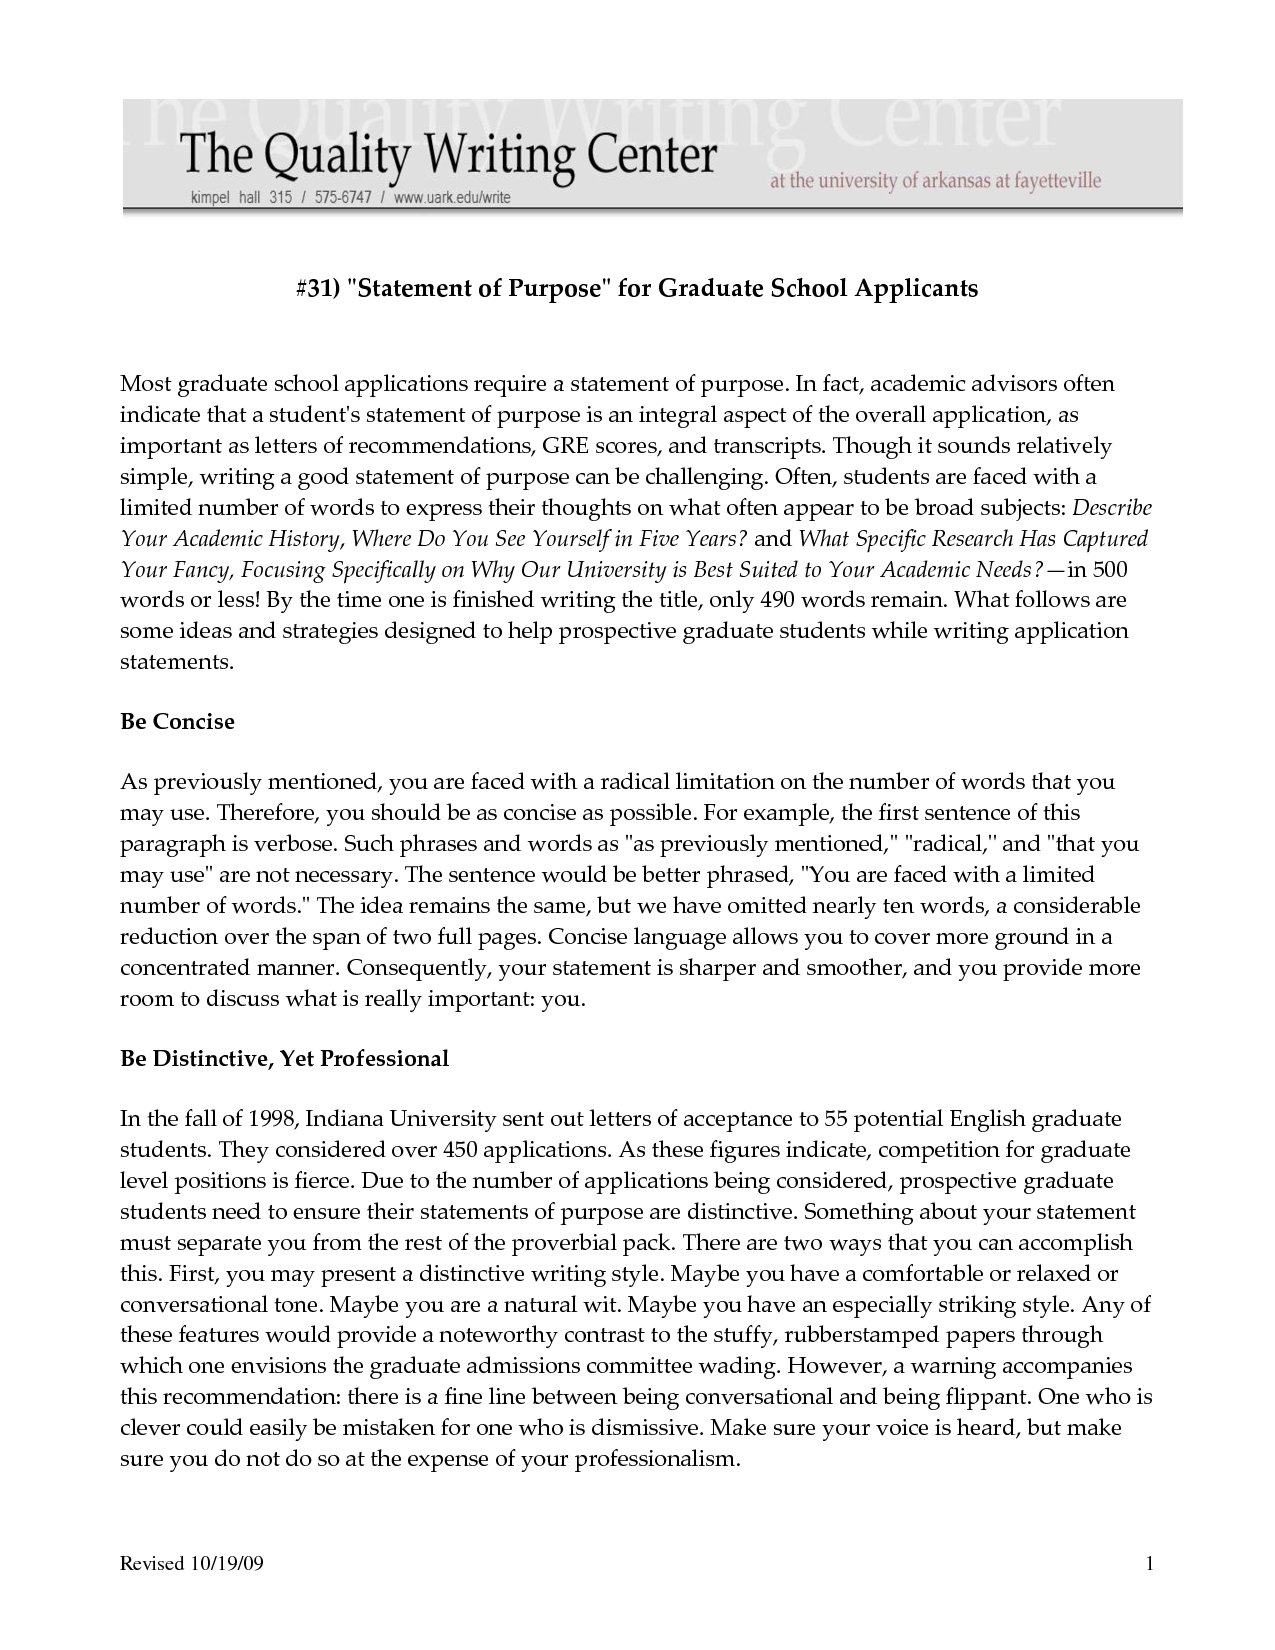 022 Njhs Essay Example Citizenship Grad School Statement Of Purpose Enc Examples Amazing Character Full